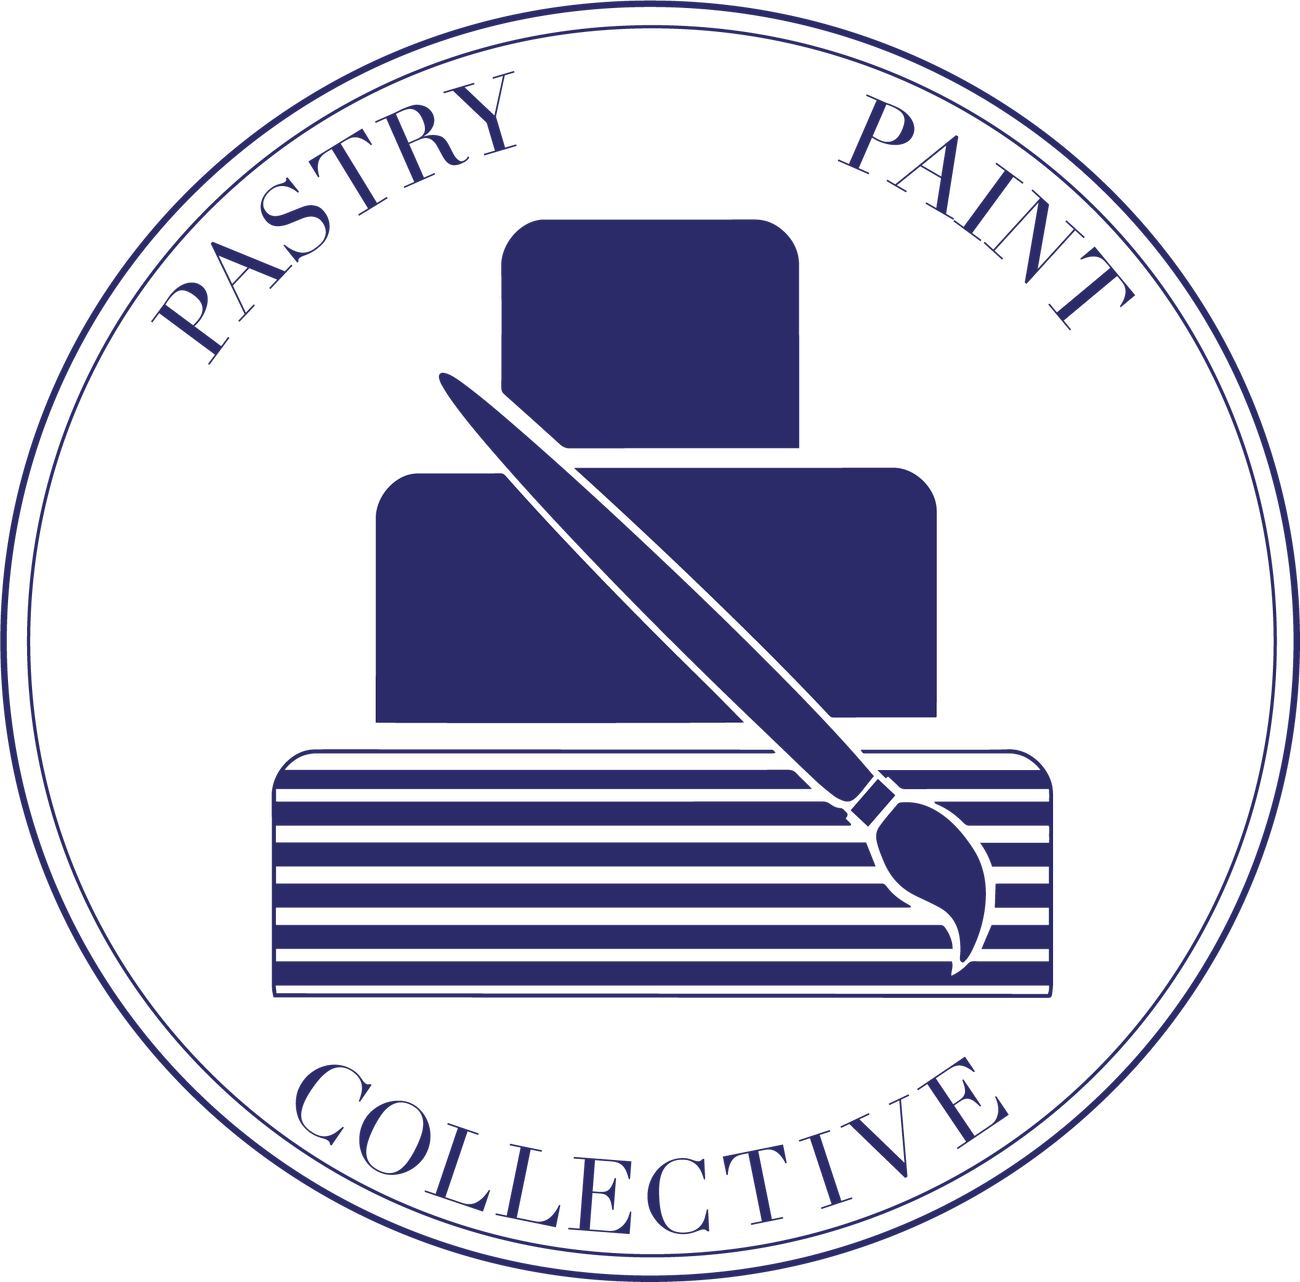 Pastry Paint Collective